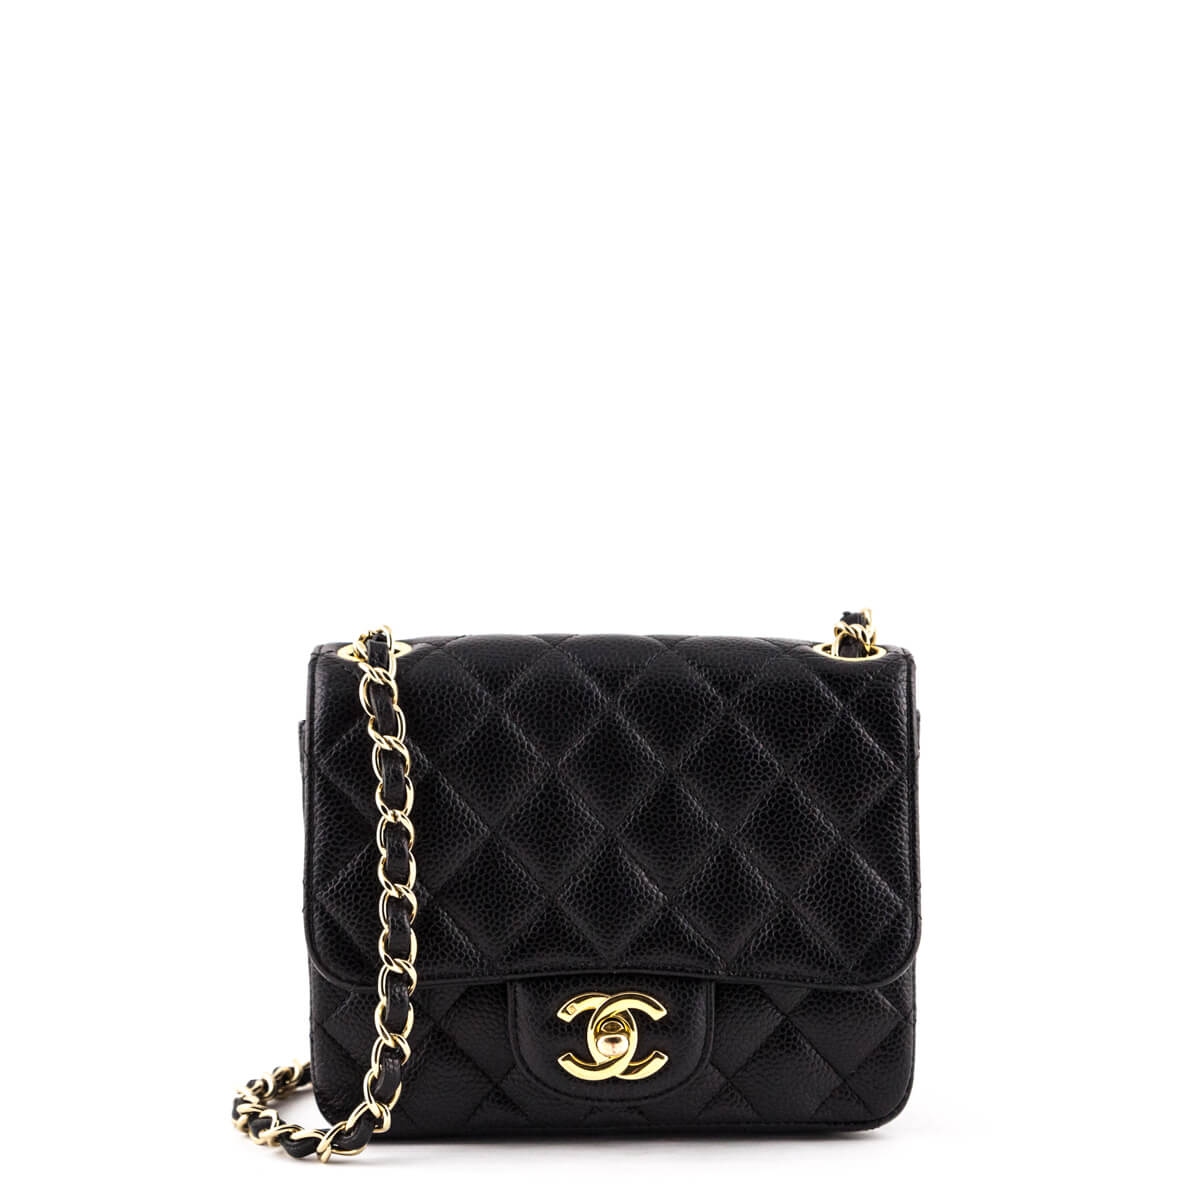 89488fd523c26b Chanel Black Quilted Caviar Mini Square Flap Bag - LOVE that BAG - Preowned  Authentic Designer ...